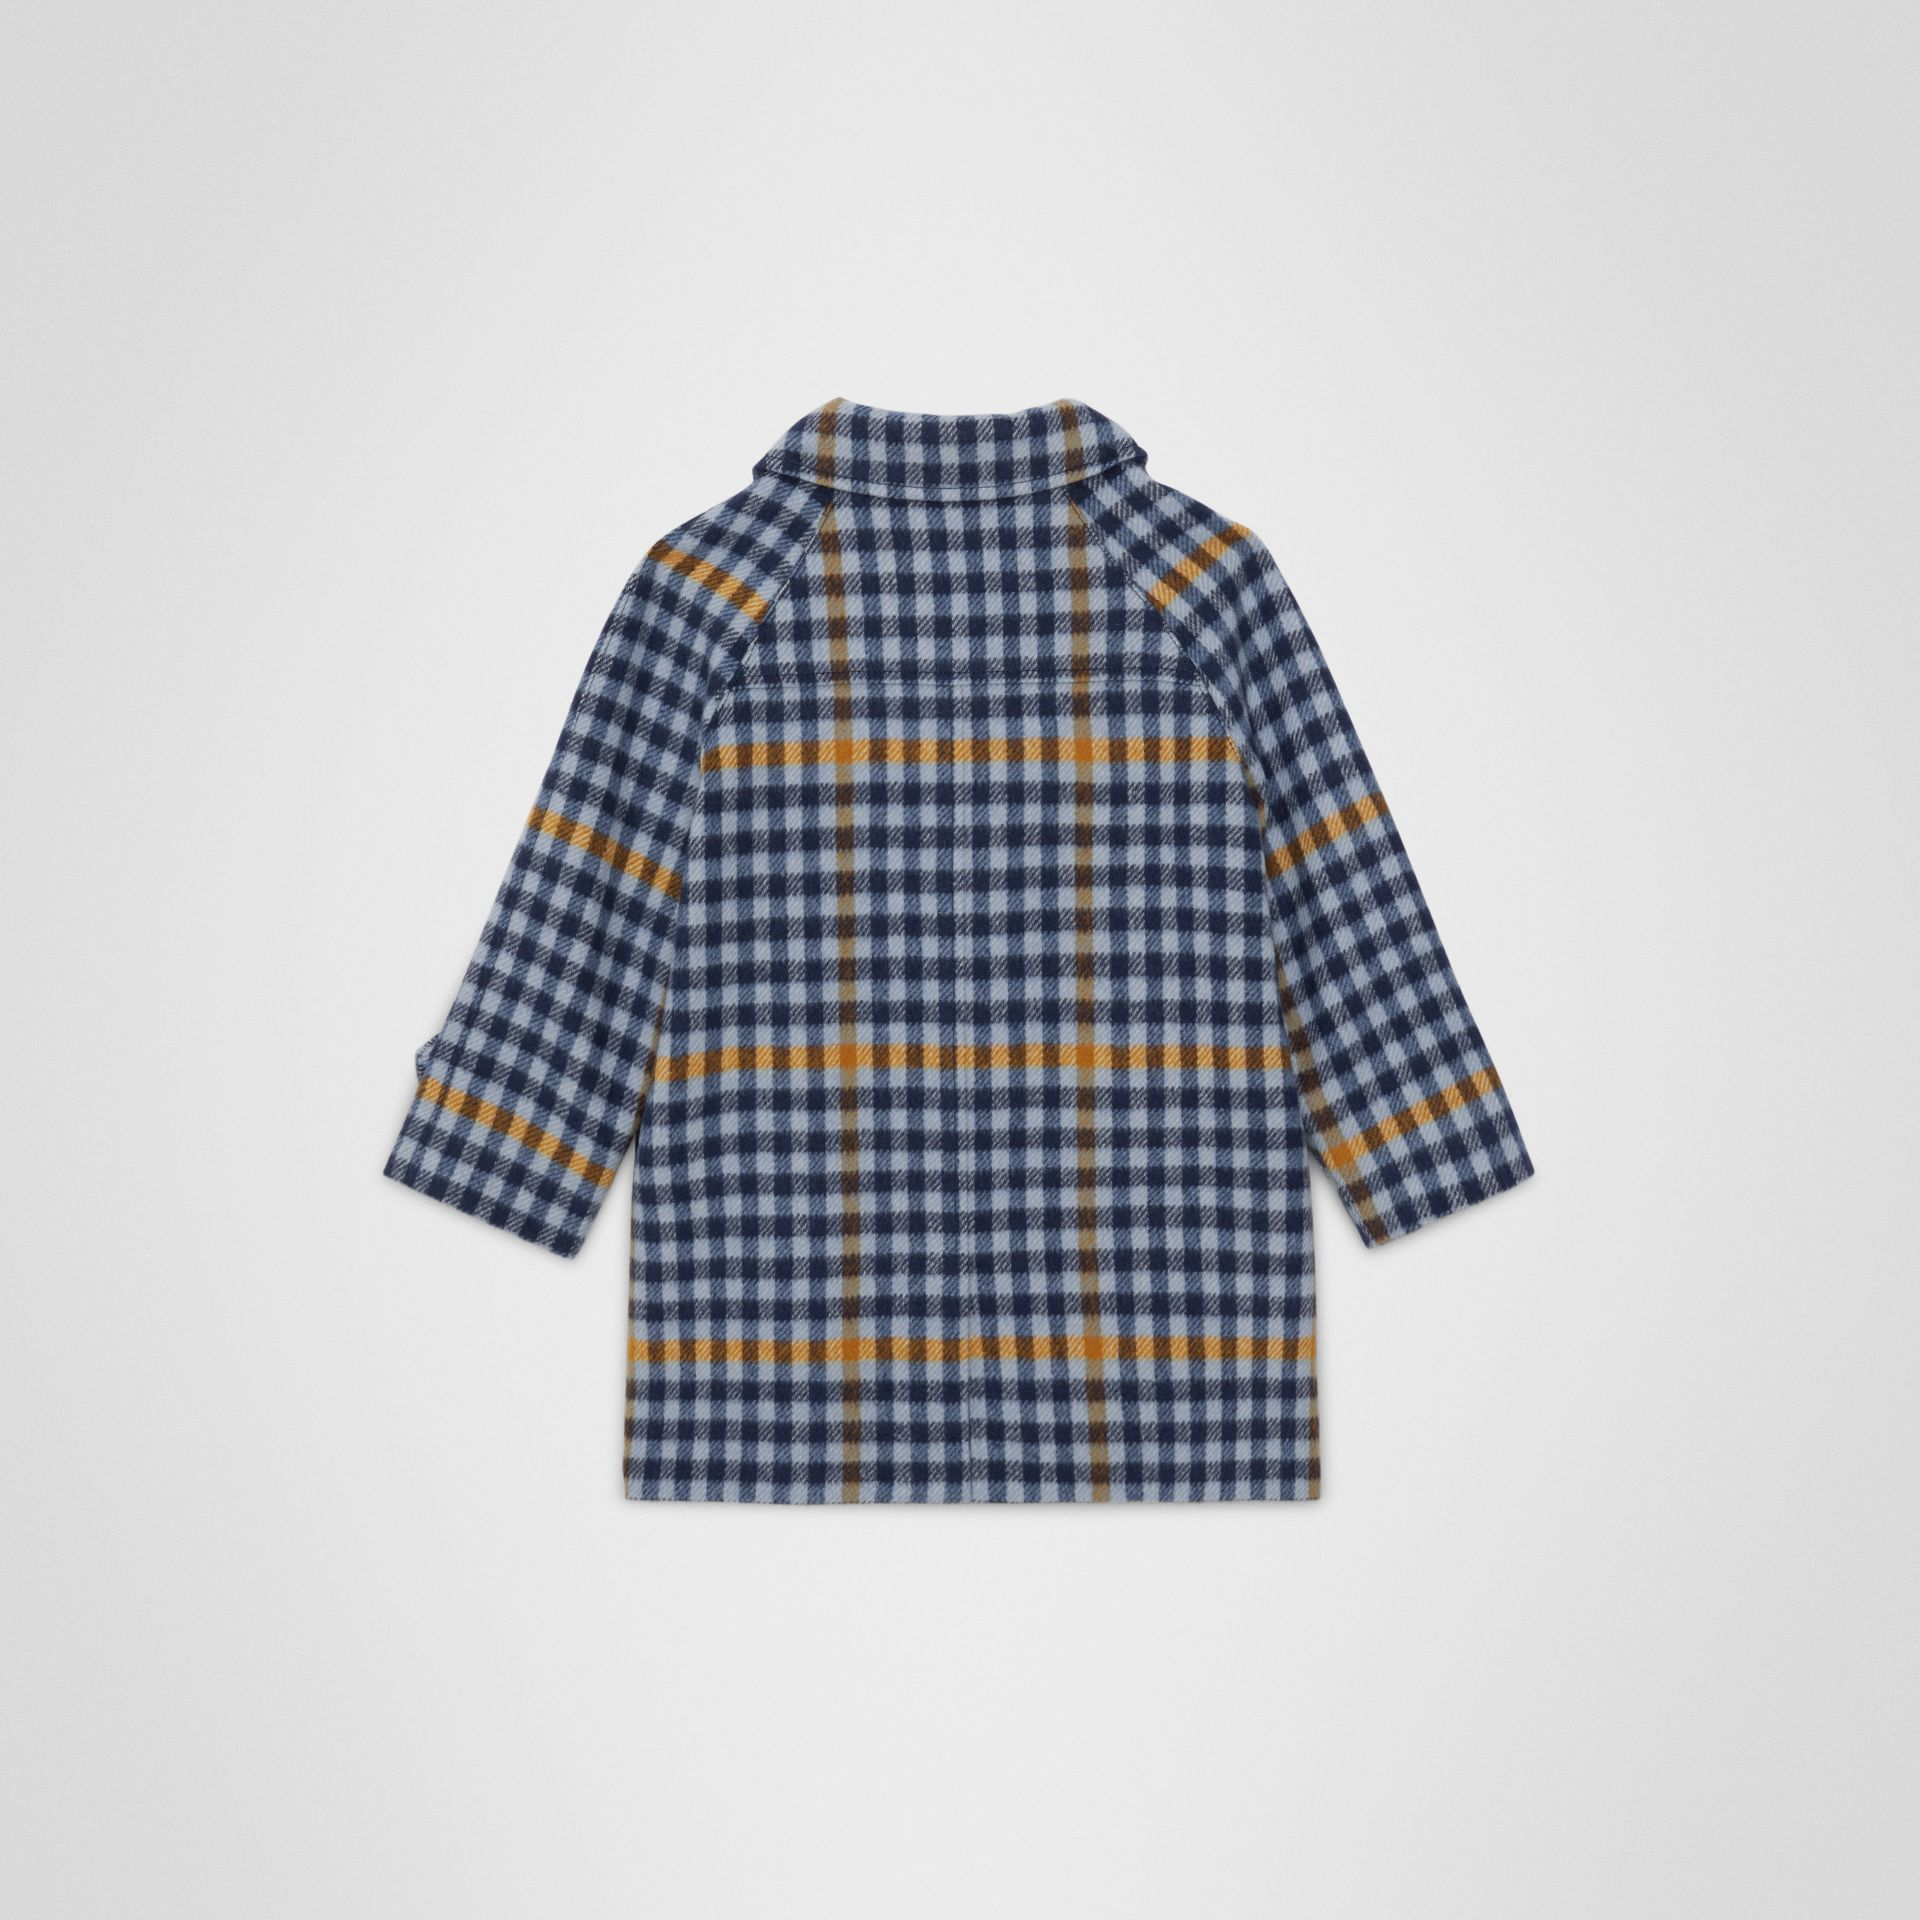 Paletot en laine à motif check (Bleu Toile) - Enfant | Burberry Canada - photo de la galerie 3